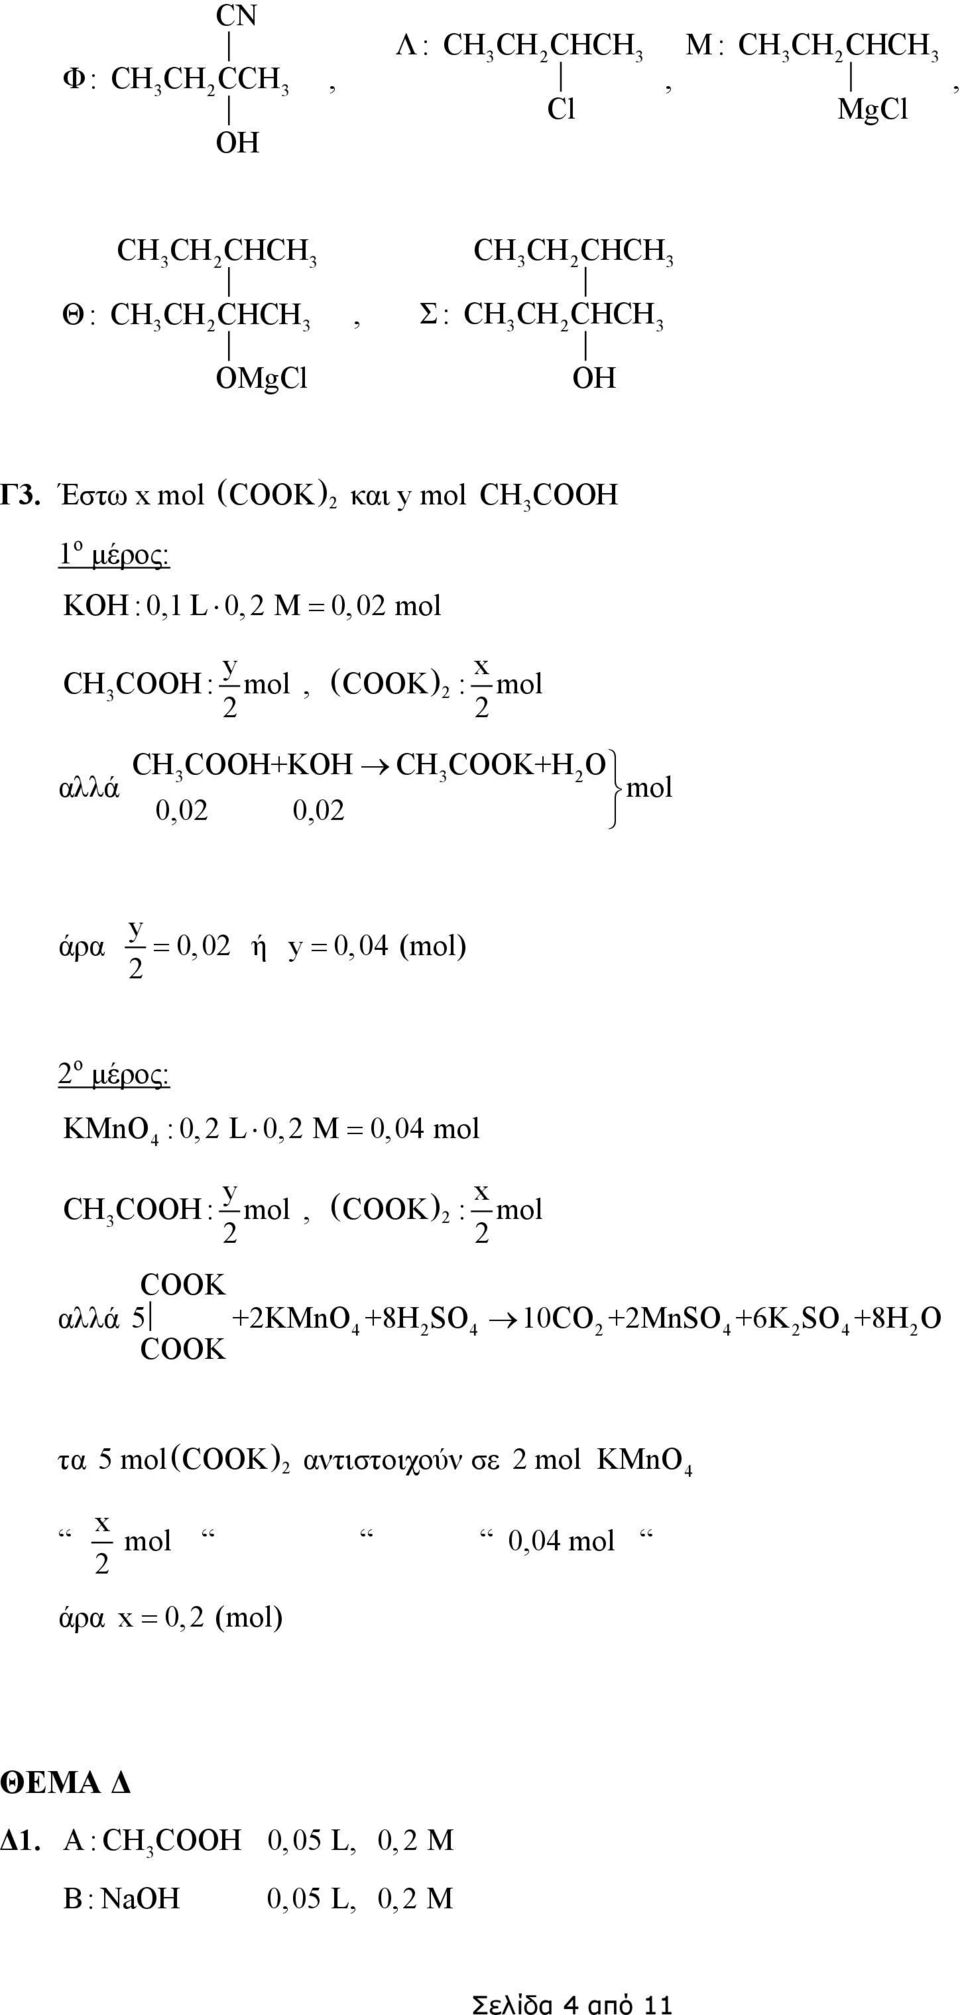 00 00 άρα y = 00 ή y 004 (mol) = ο µέρος: KnO :0 L 0 = 004 mol 4 y CHCOOH : mol ( ) x COOK : mol COOK 5 +KnO +8H SO 10CO +nso +6K SO